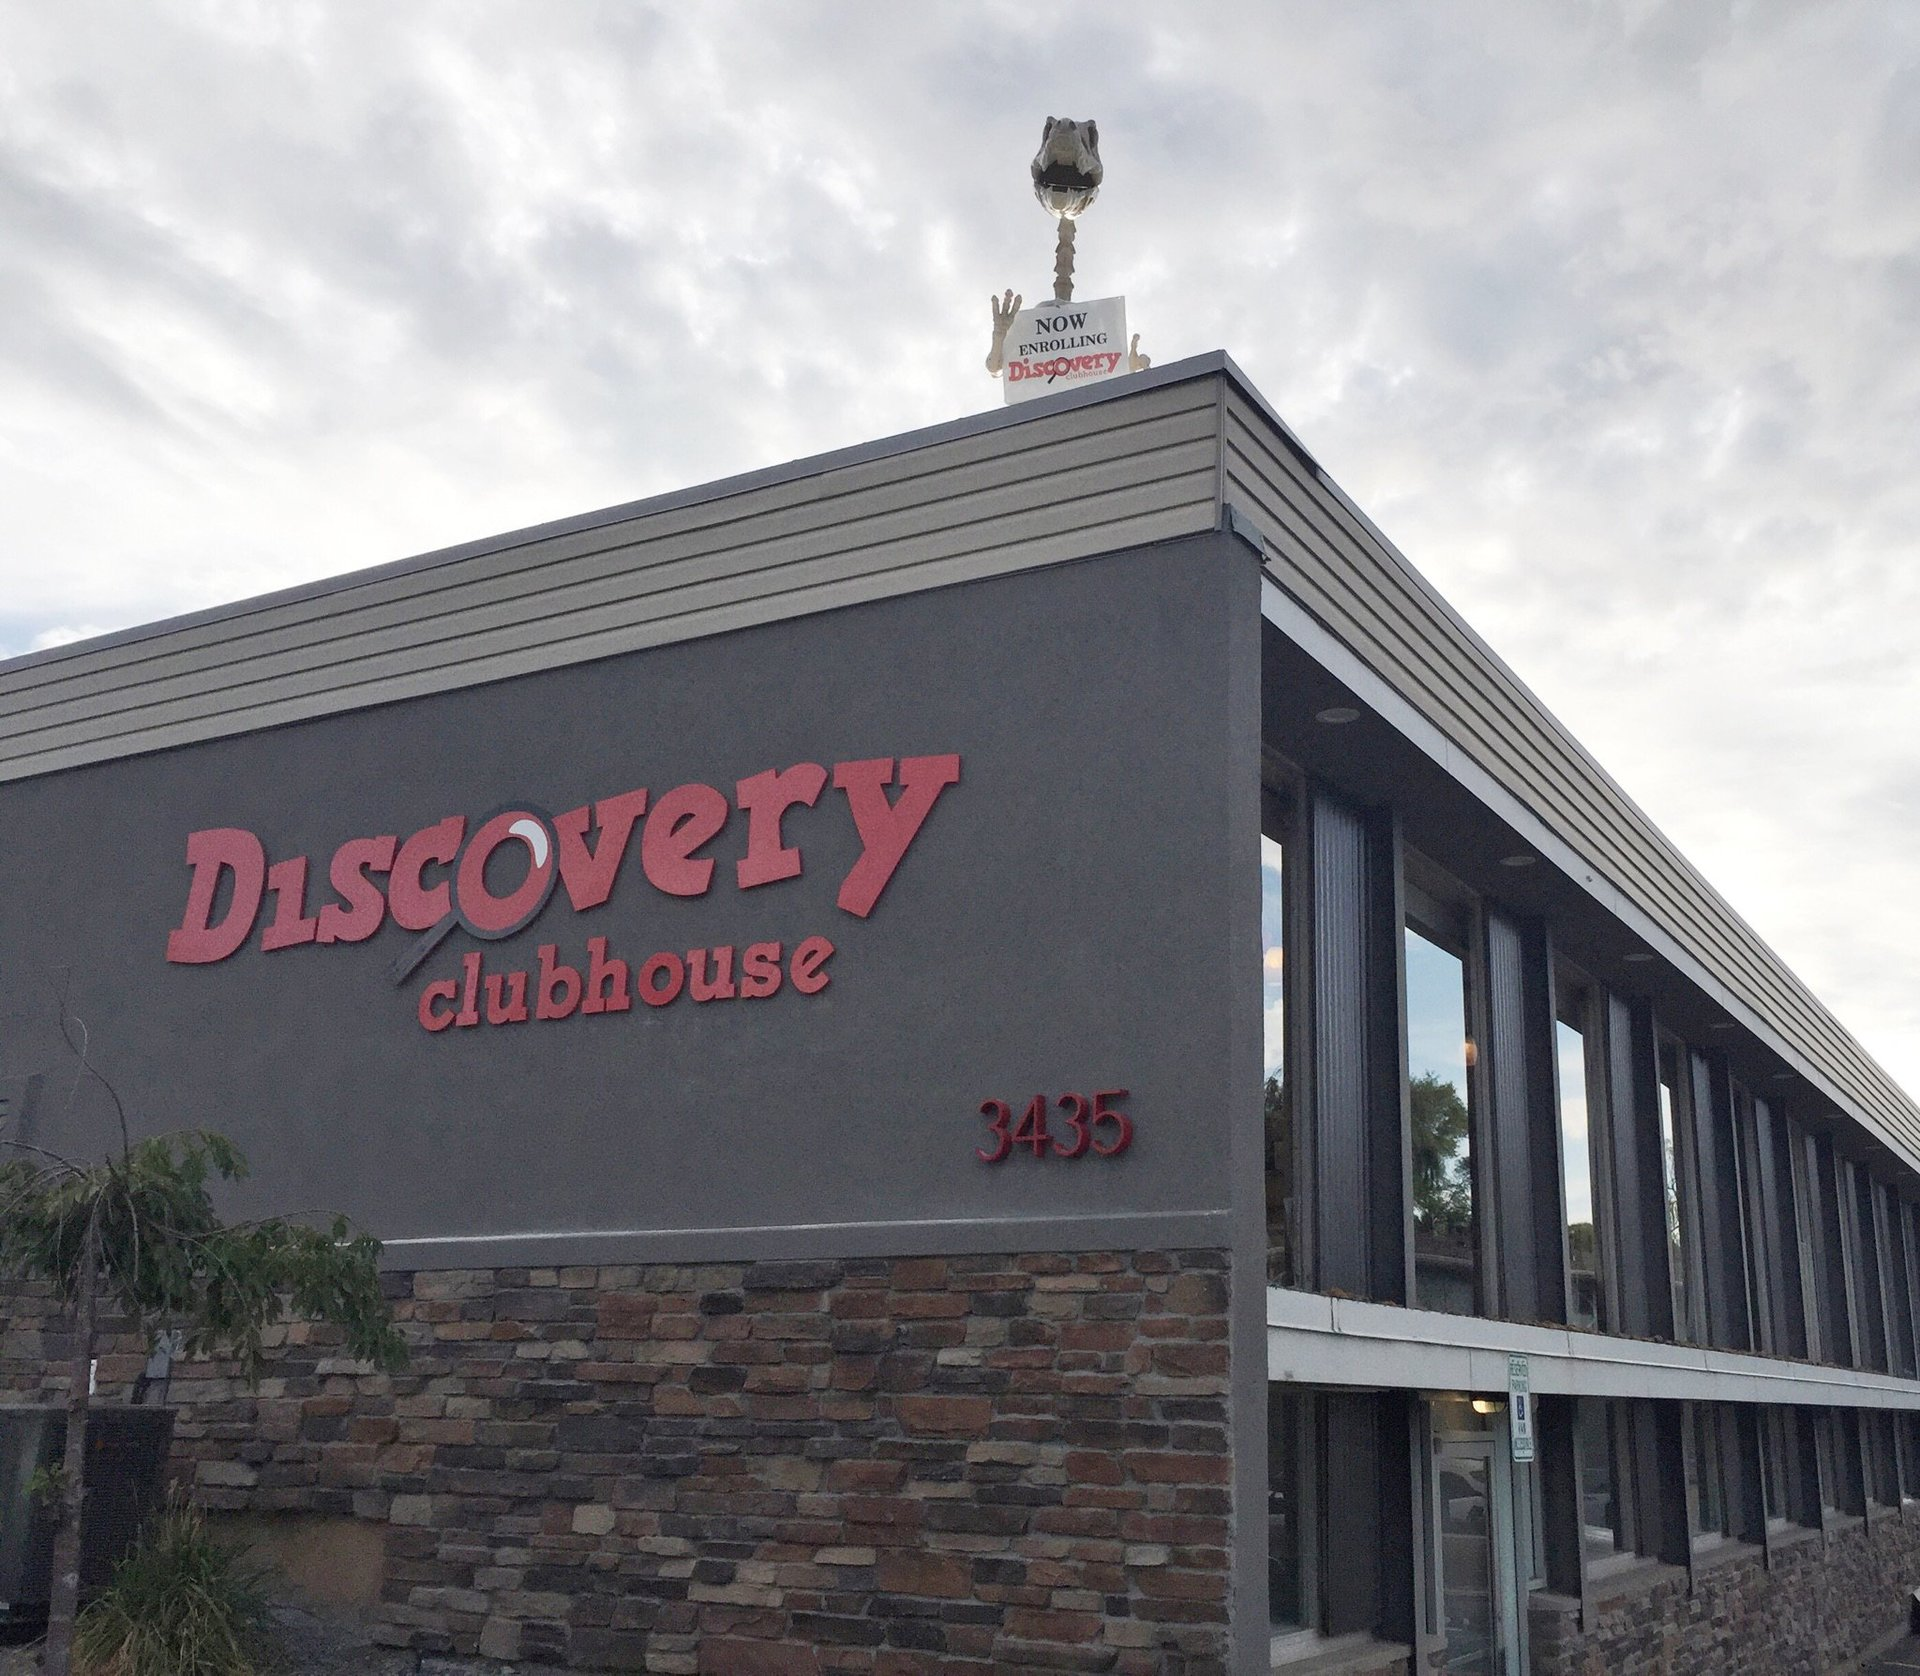 Discovery Clubhouse in East Ogden